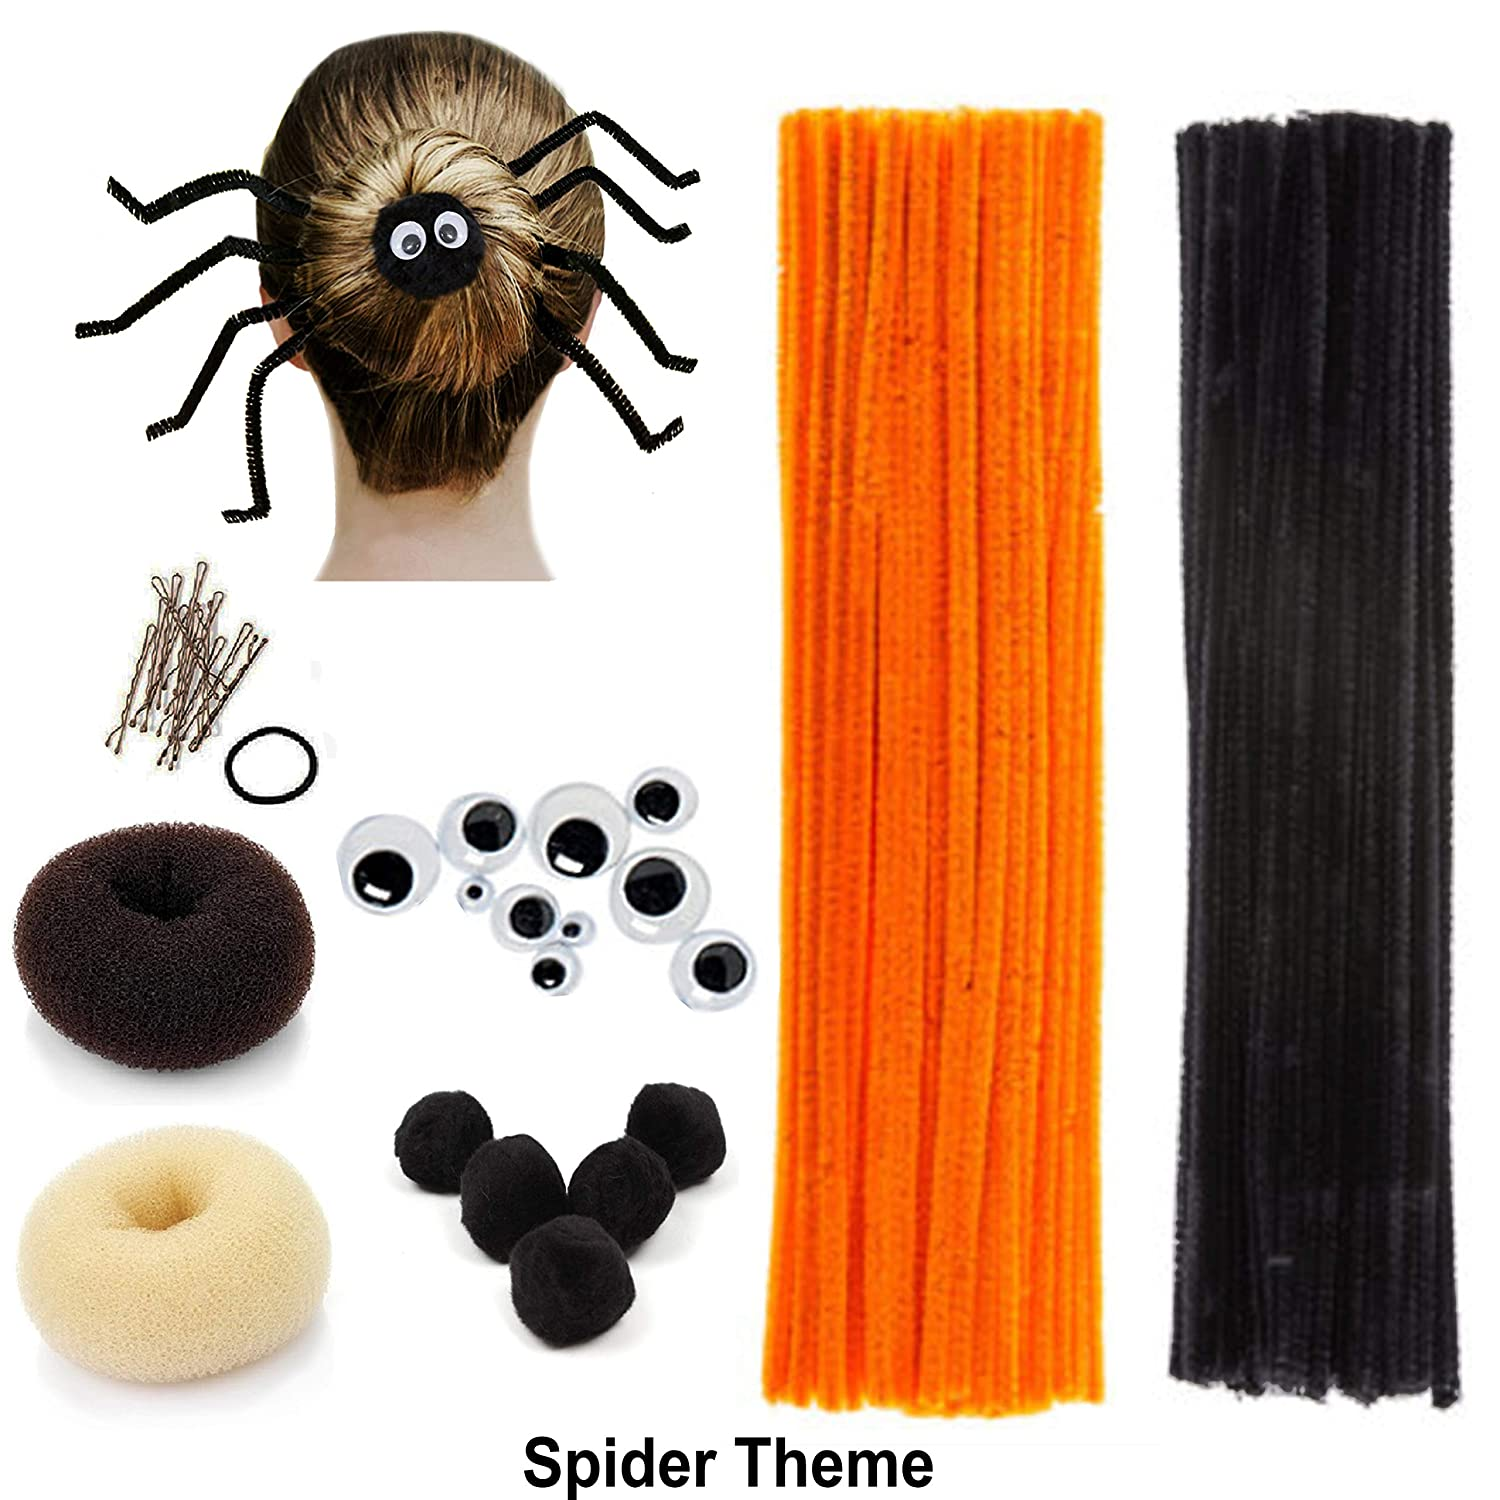 Beaute Galleria Creativity Diy Kids Hair Crafts Accessory Decor Chenille Stem Pipe Cleaner Bun Maker For Halloween Costume Spider Reindeer Christmas